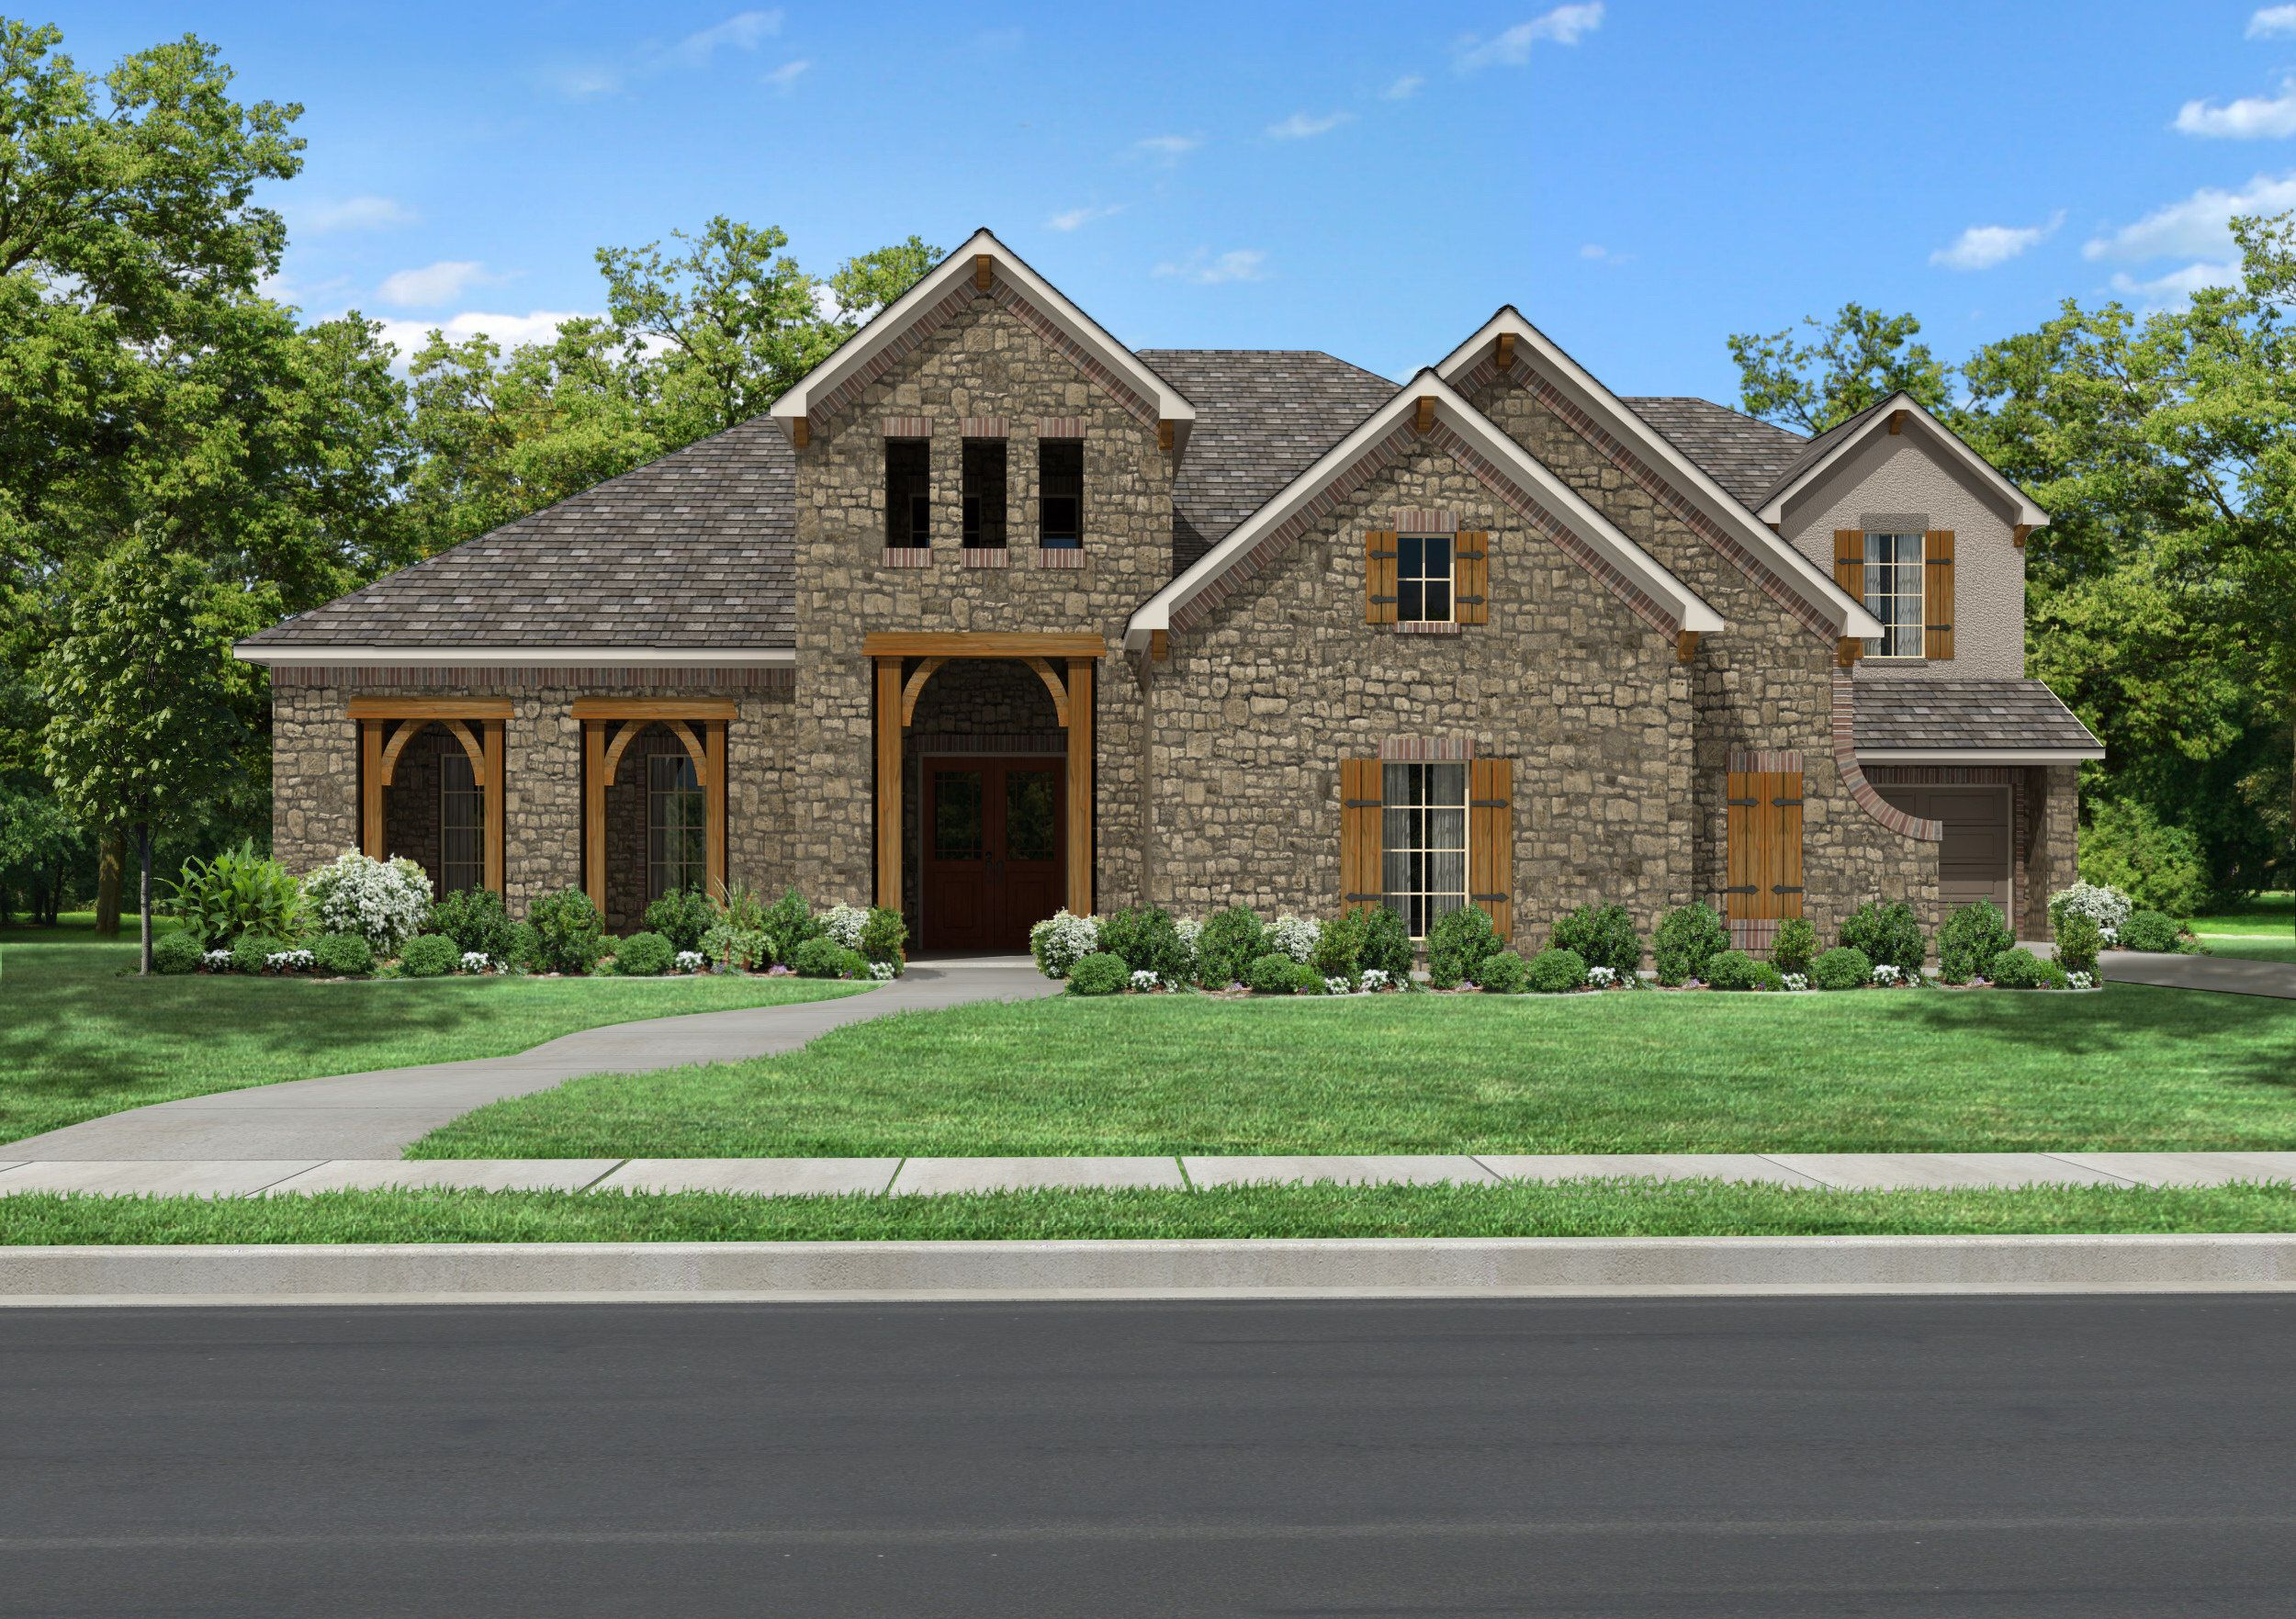 Newmark Homes Floor Plans Villa Gamberaia Plan Beautiful Two Story With Front Porch